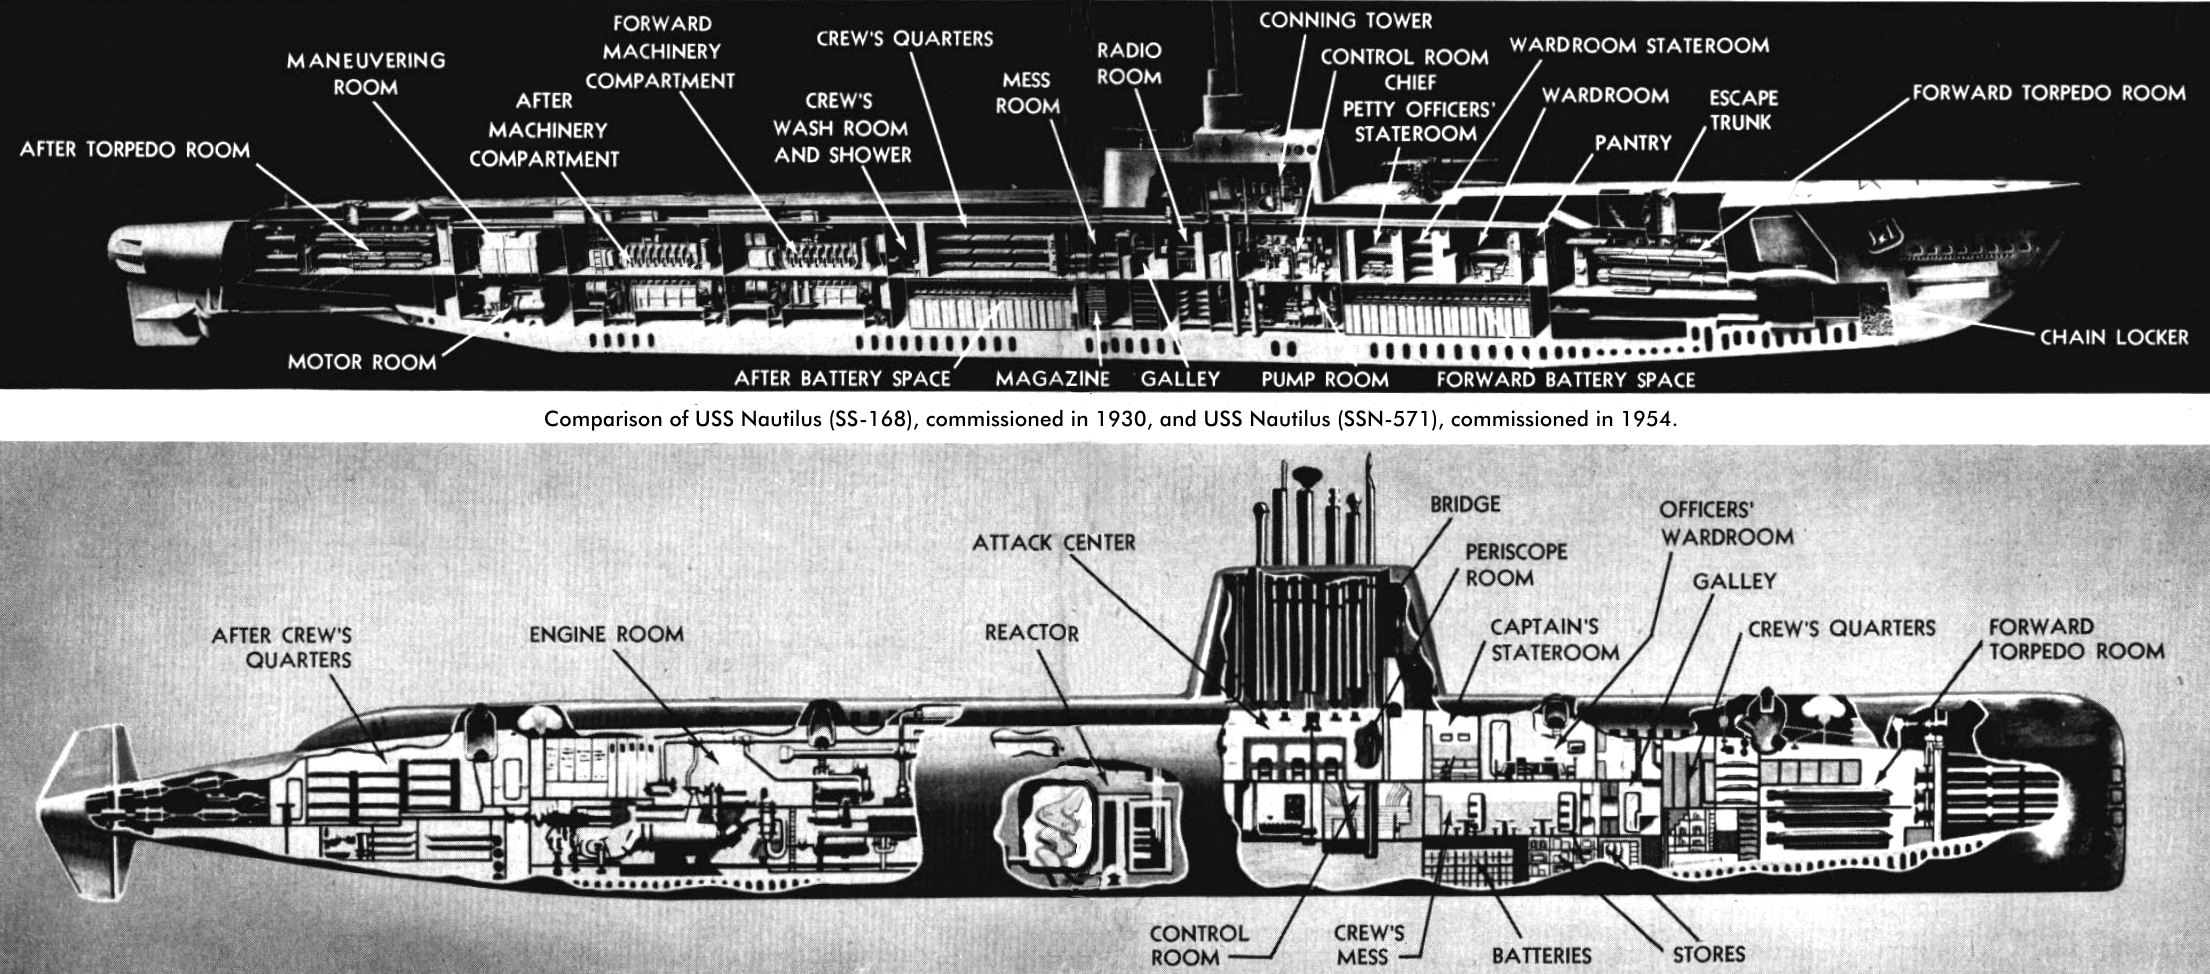 Technical_drawing_of_USS_Nautilus_(SS-168)_and_USS_Nautilus_(SSN-571)_1955